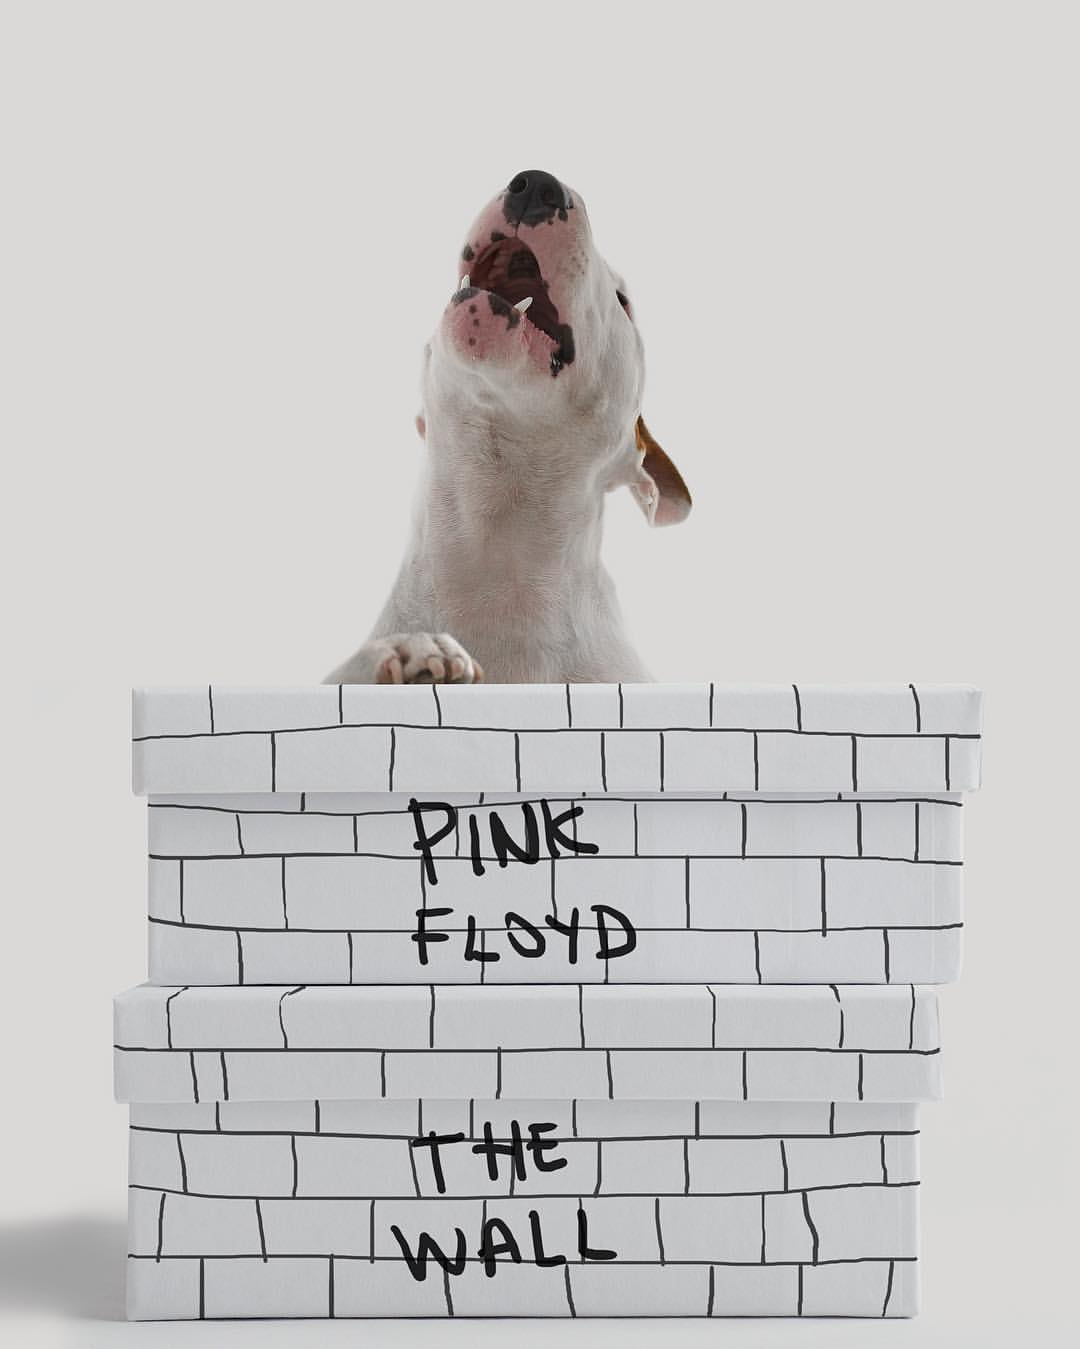 Pink Floyd- The Wall (Album Series) | Jimmy the Bulldog by